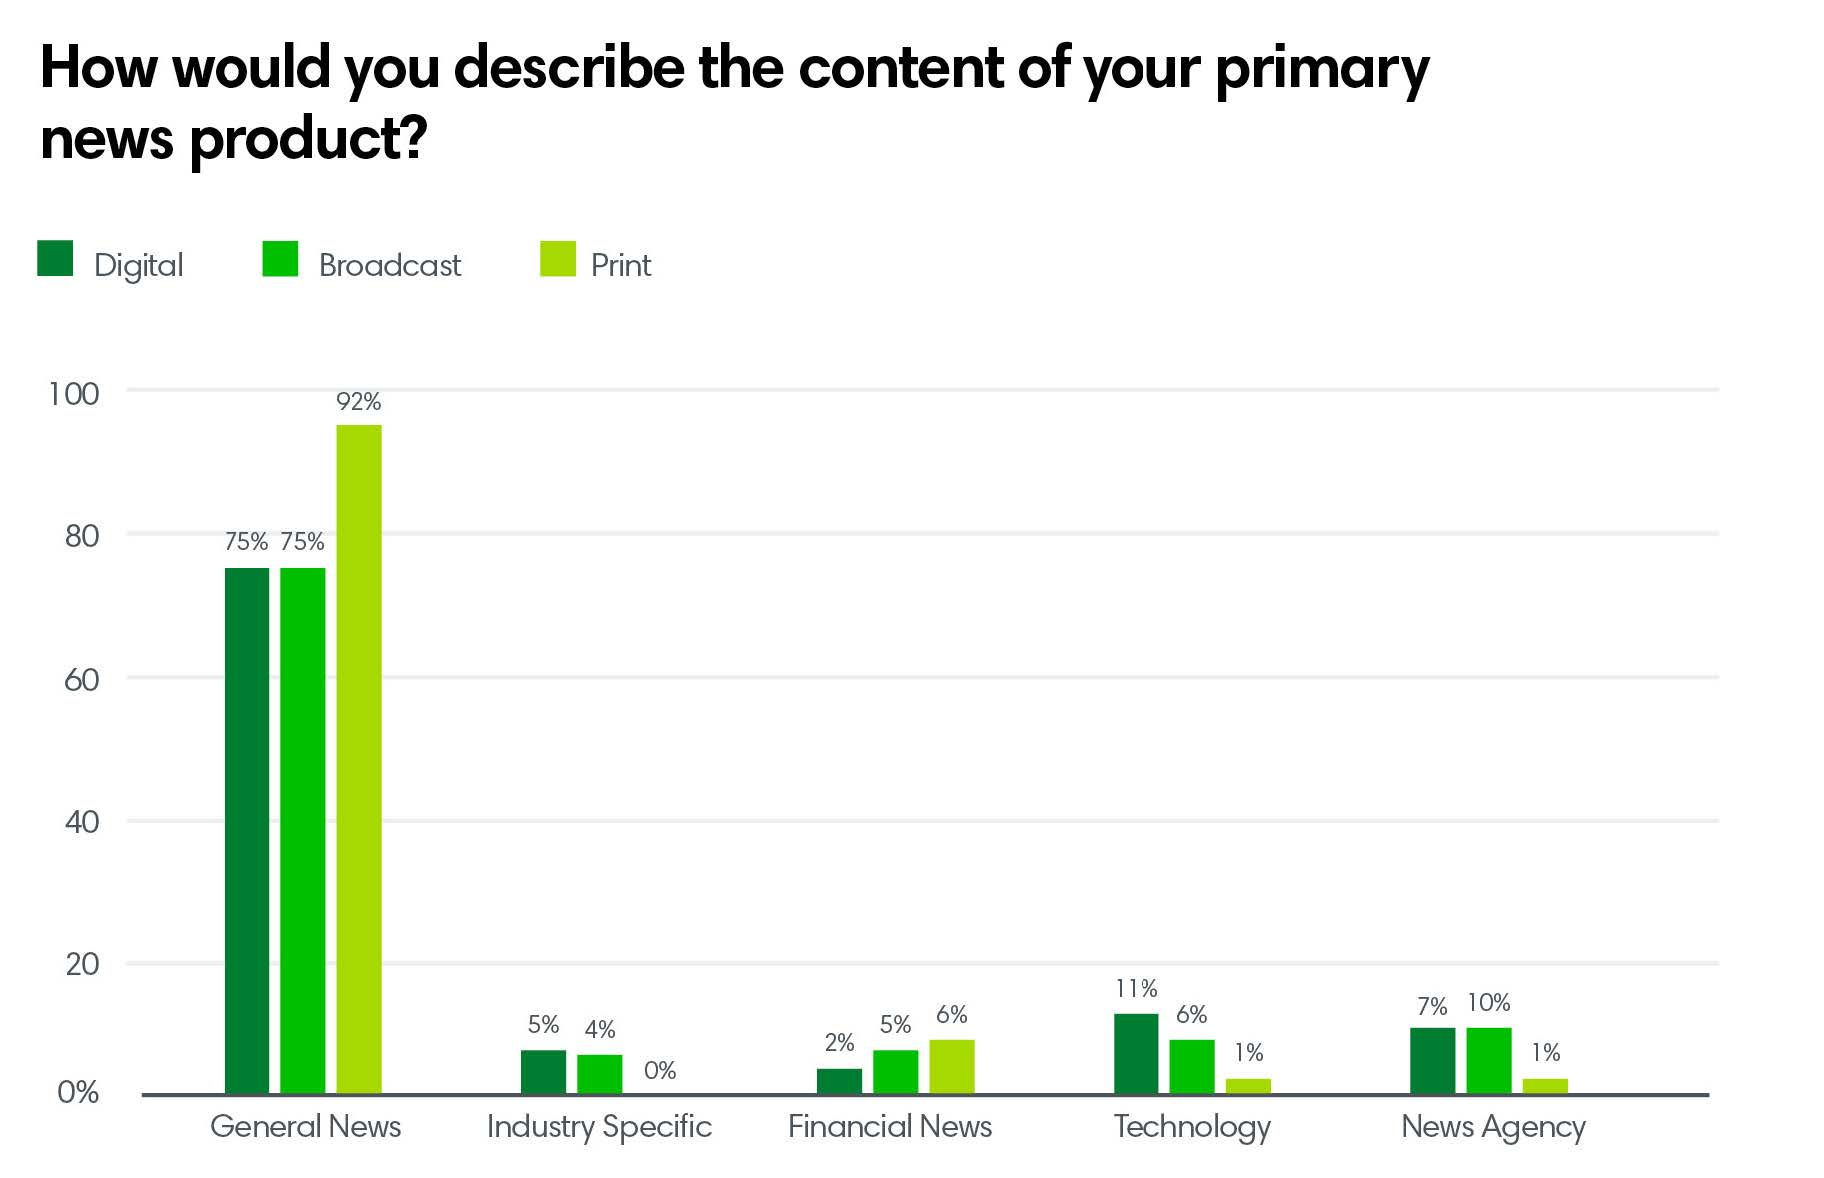 How would you describe the content of your primary news product?